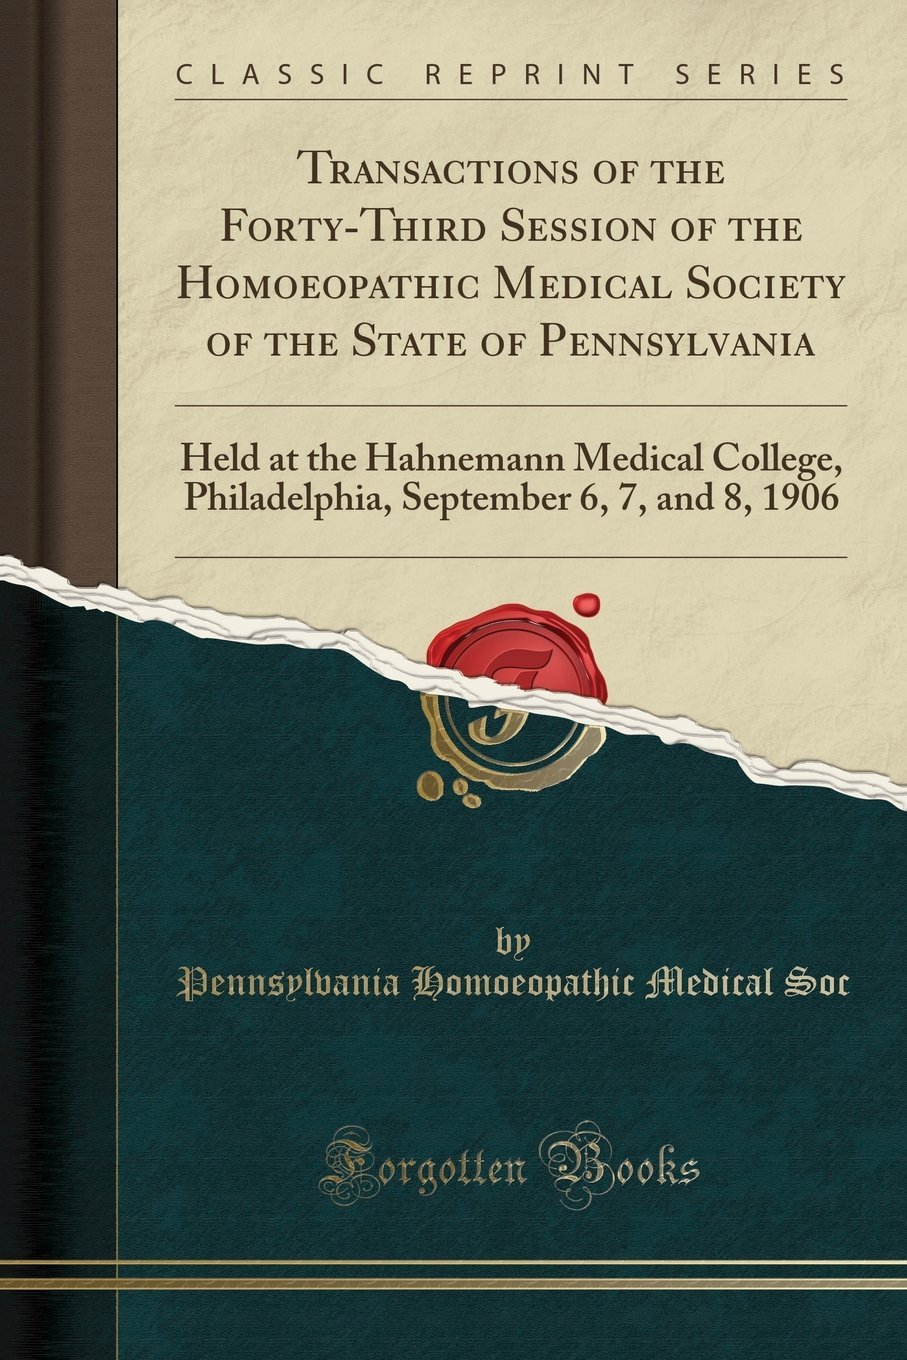 Download Transactions of the Forty-Third Session of the Homoeopathic Medical Society of the State of Pennsylvania: Held at the Hahnemann Medical College, ... September 6, 7, and 8, 1906 (Classic Reprint) PDF